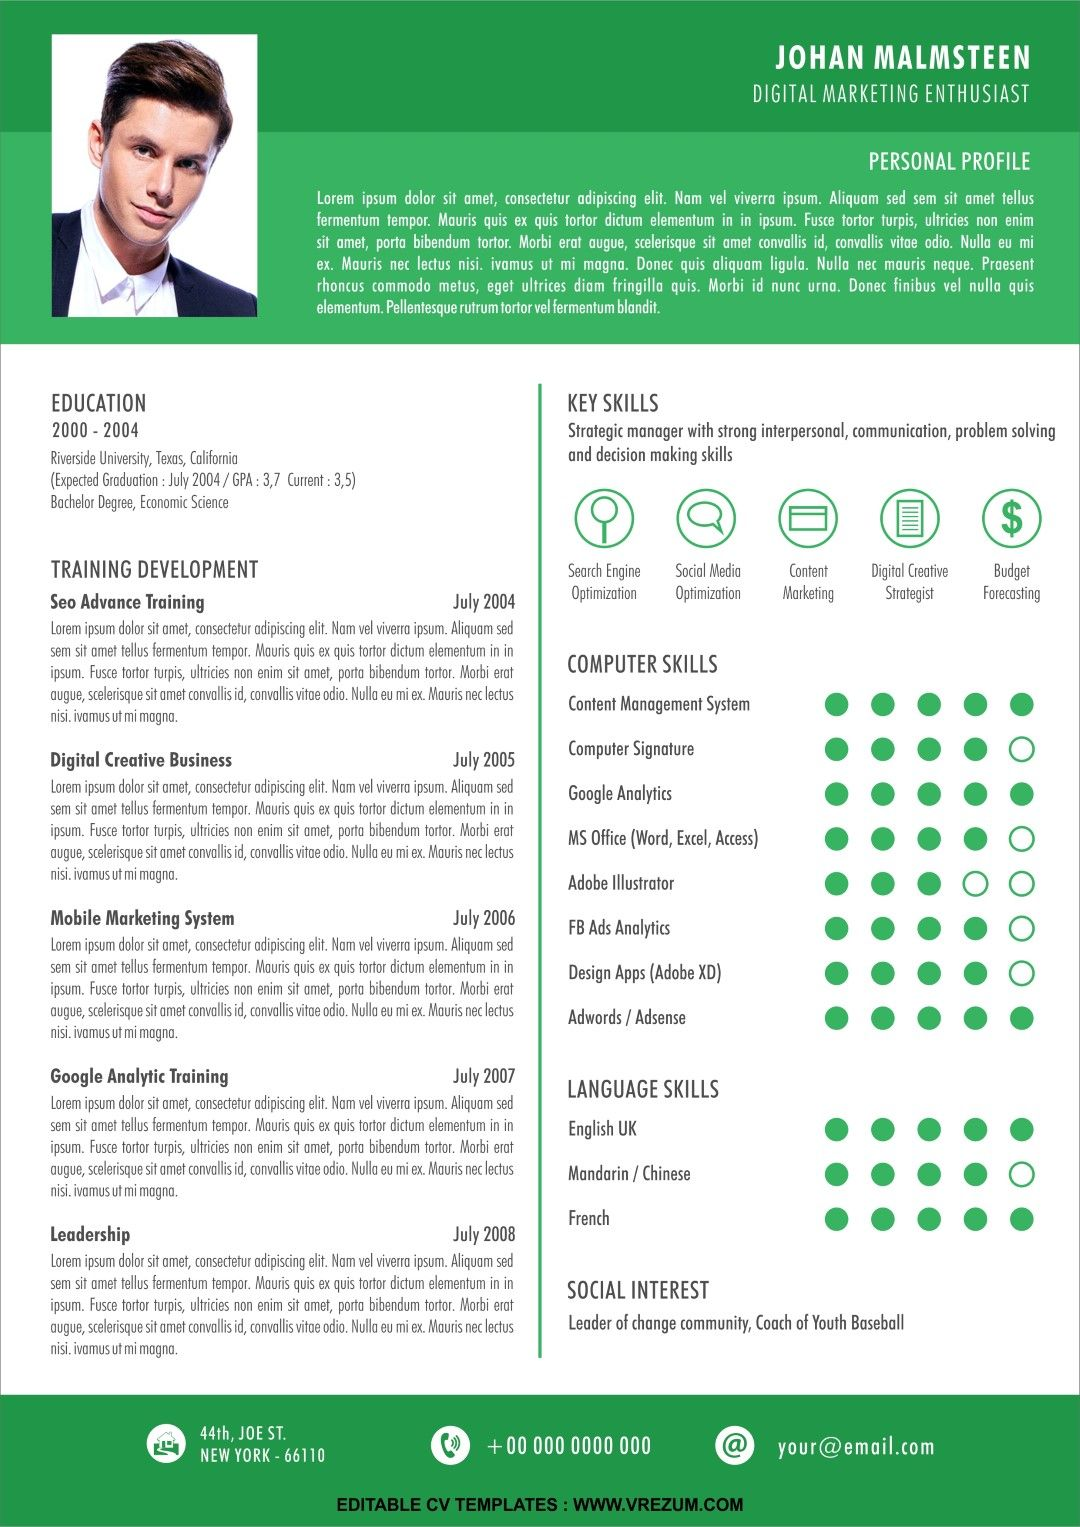 (EDITABLE) FREE CV Templates for Fresh Graduate in 2020